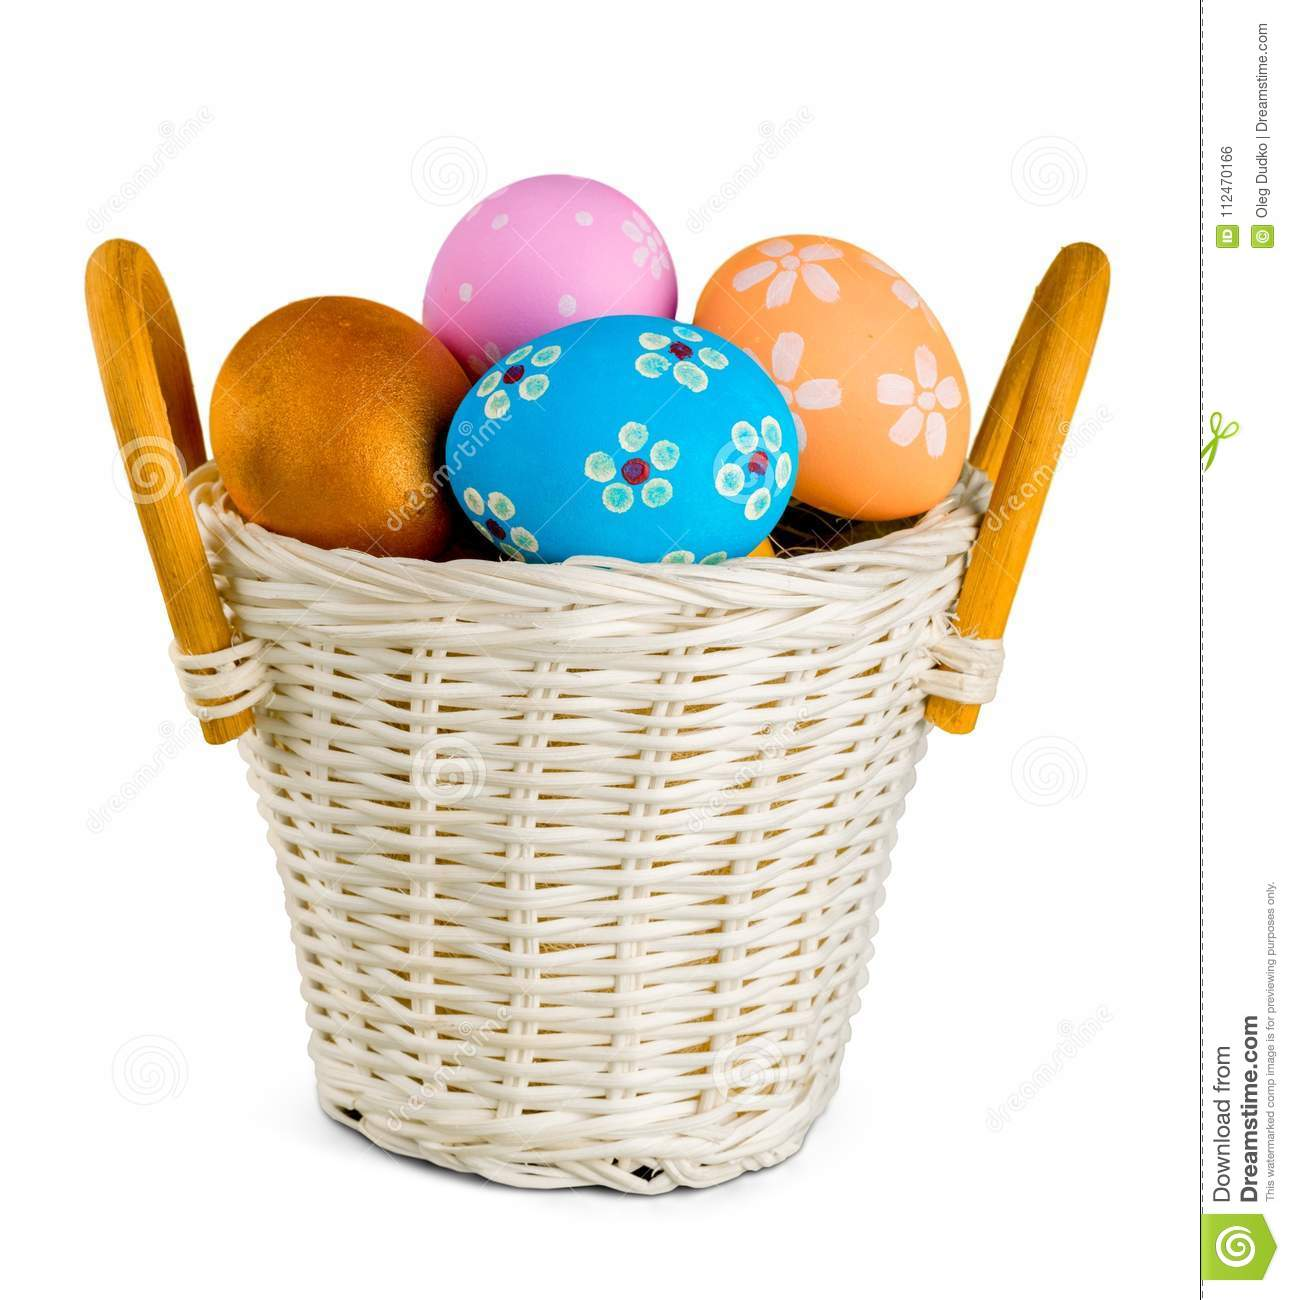 Easter basket filled with colorful eggs on a white